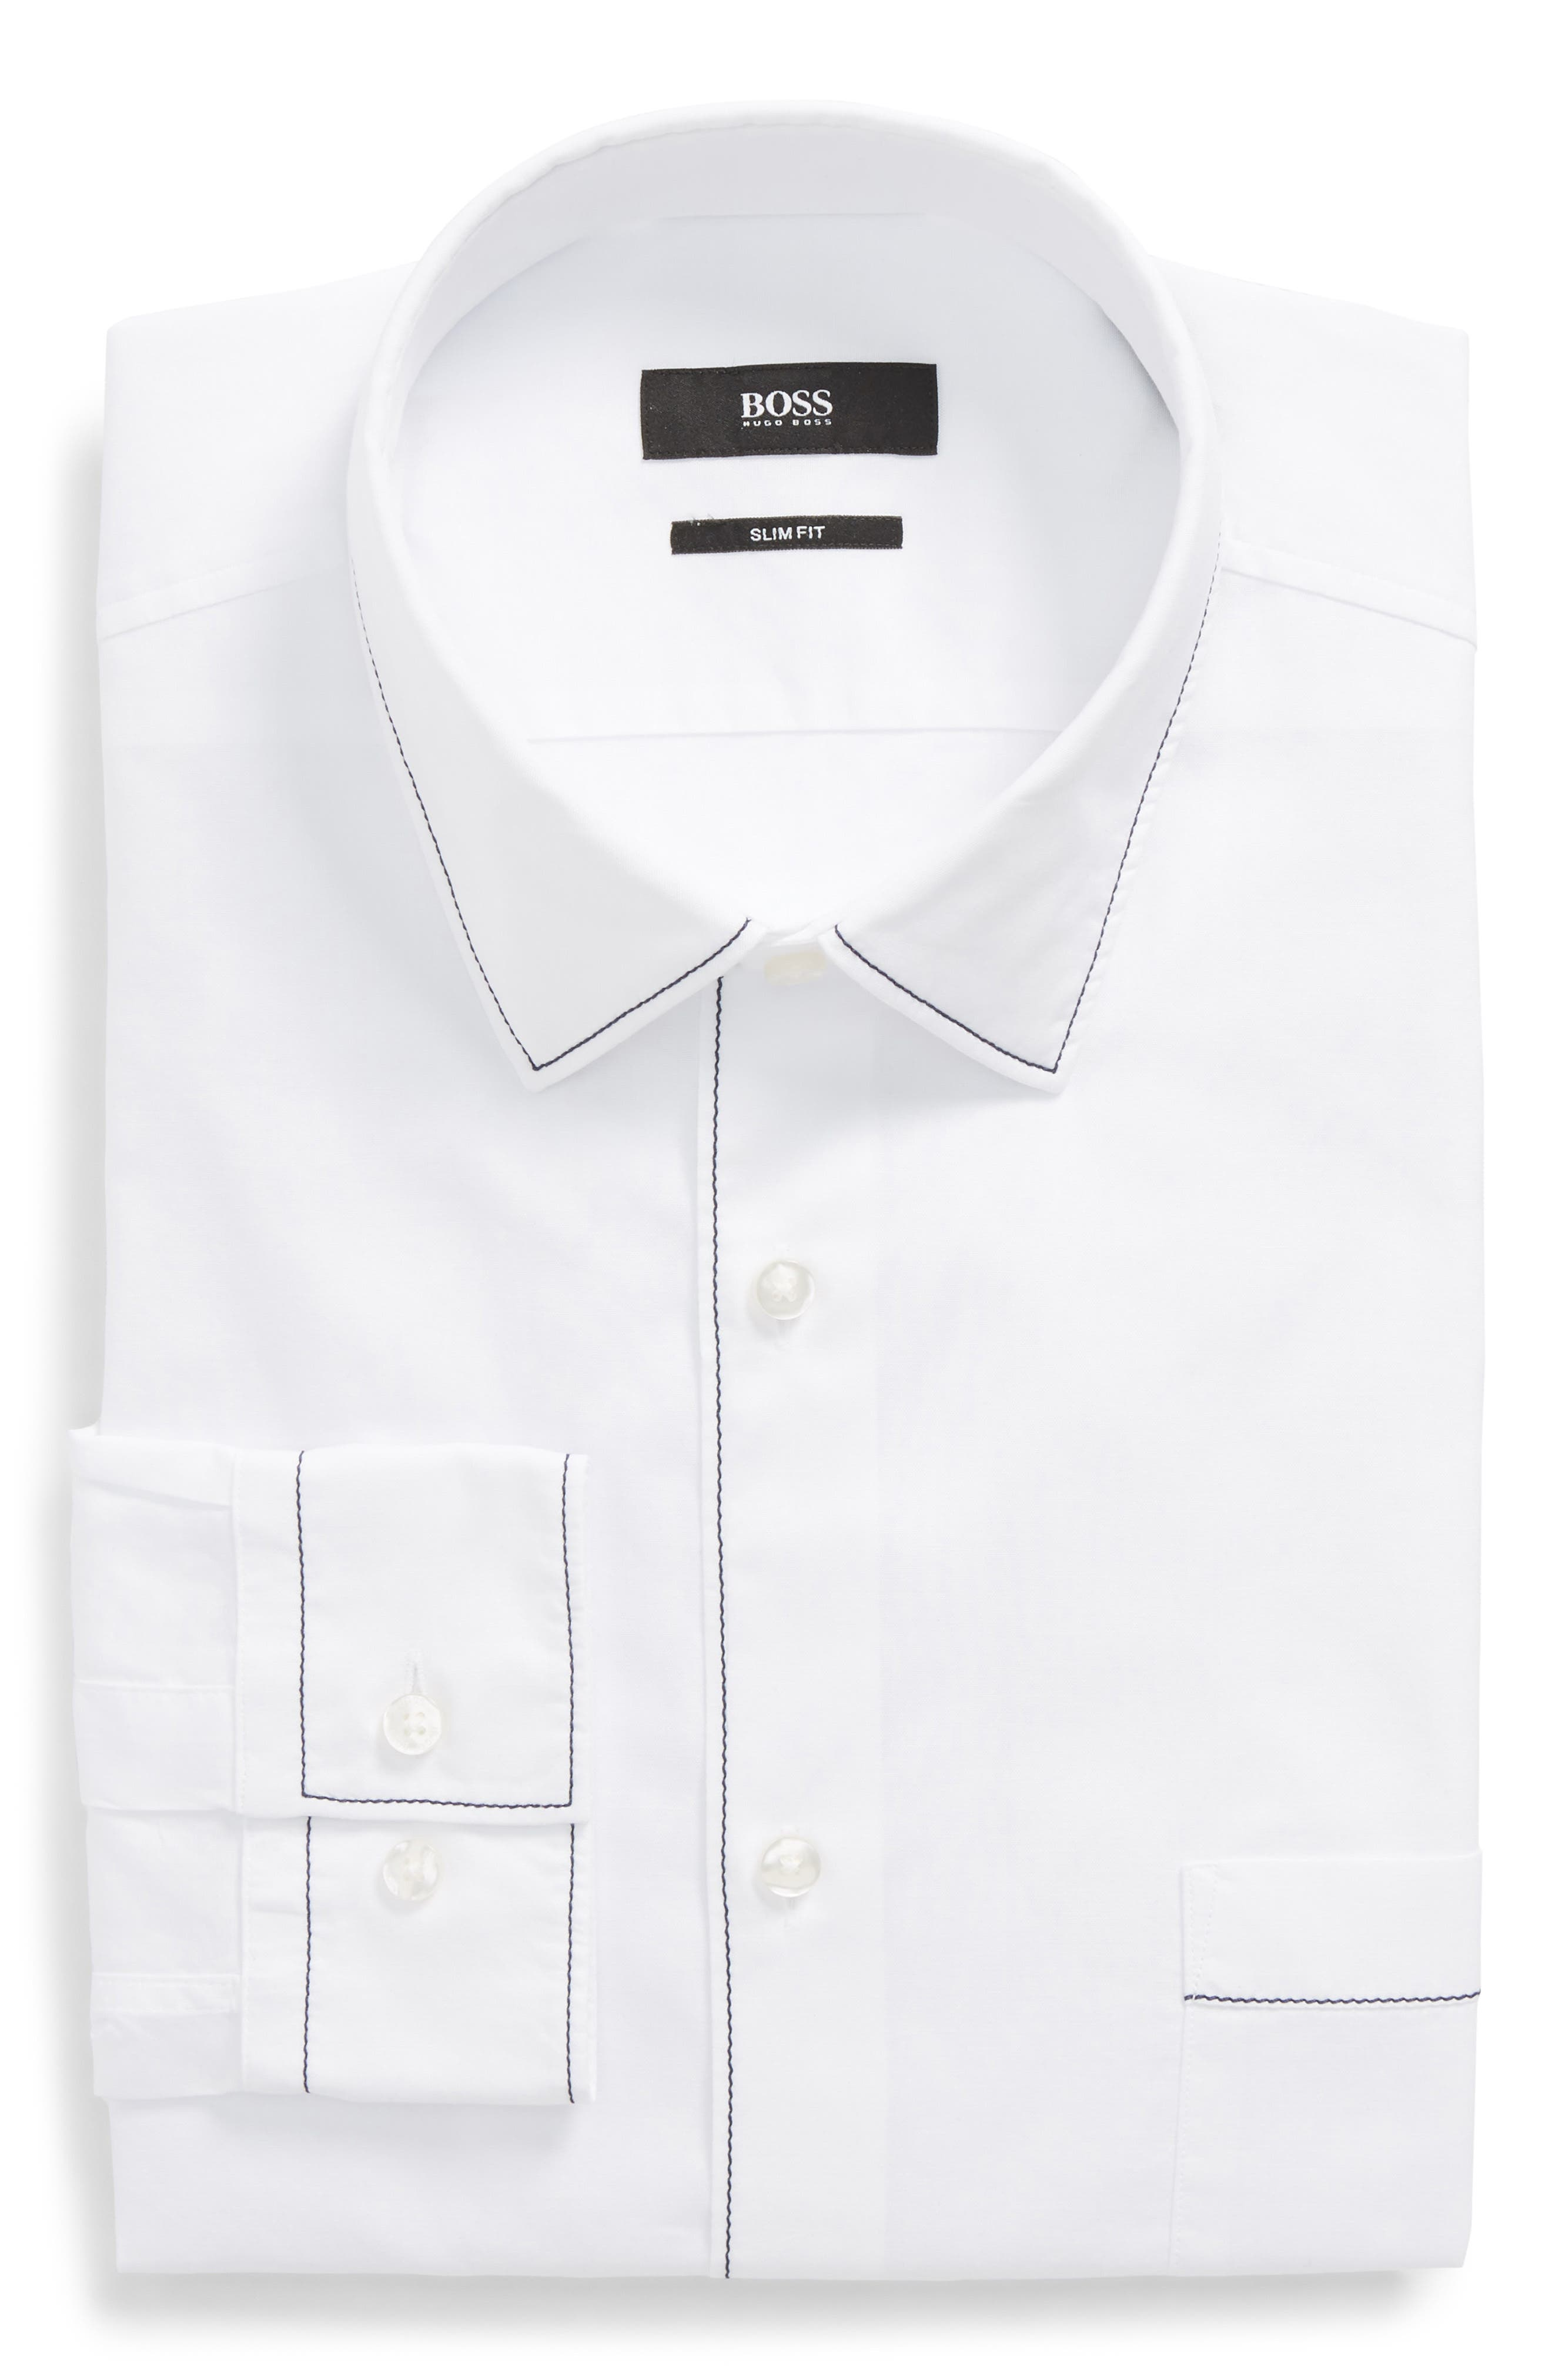 Jose Slim Fit Solid Dress Shirt,                             Main thumbnail 1, color,                             White